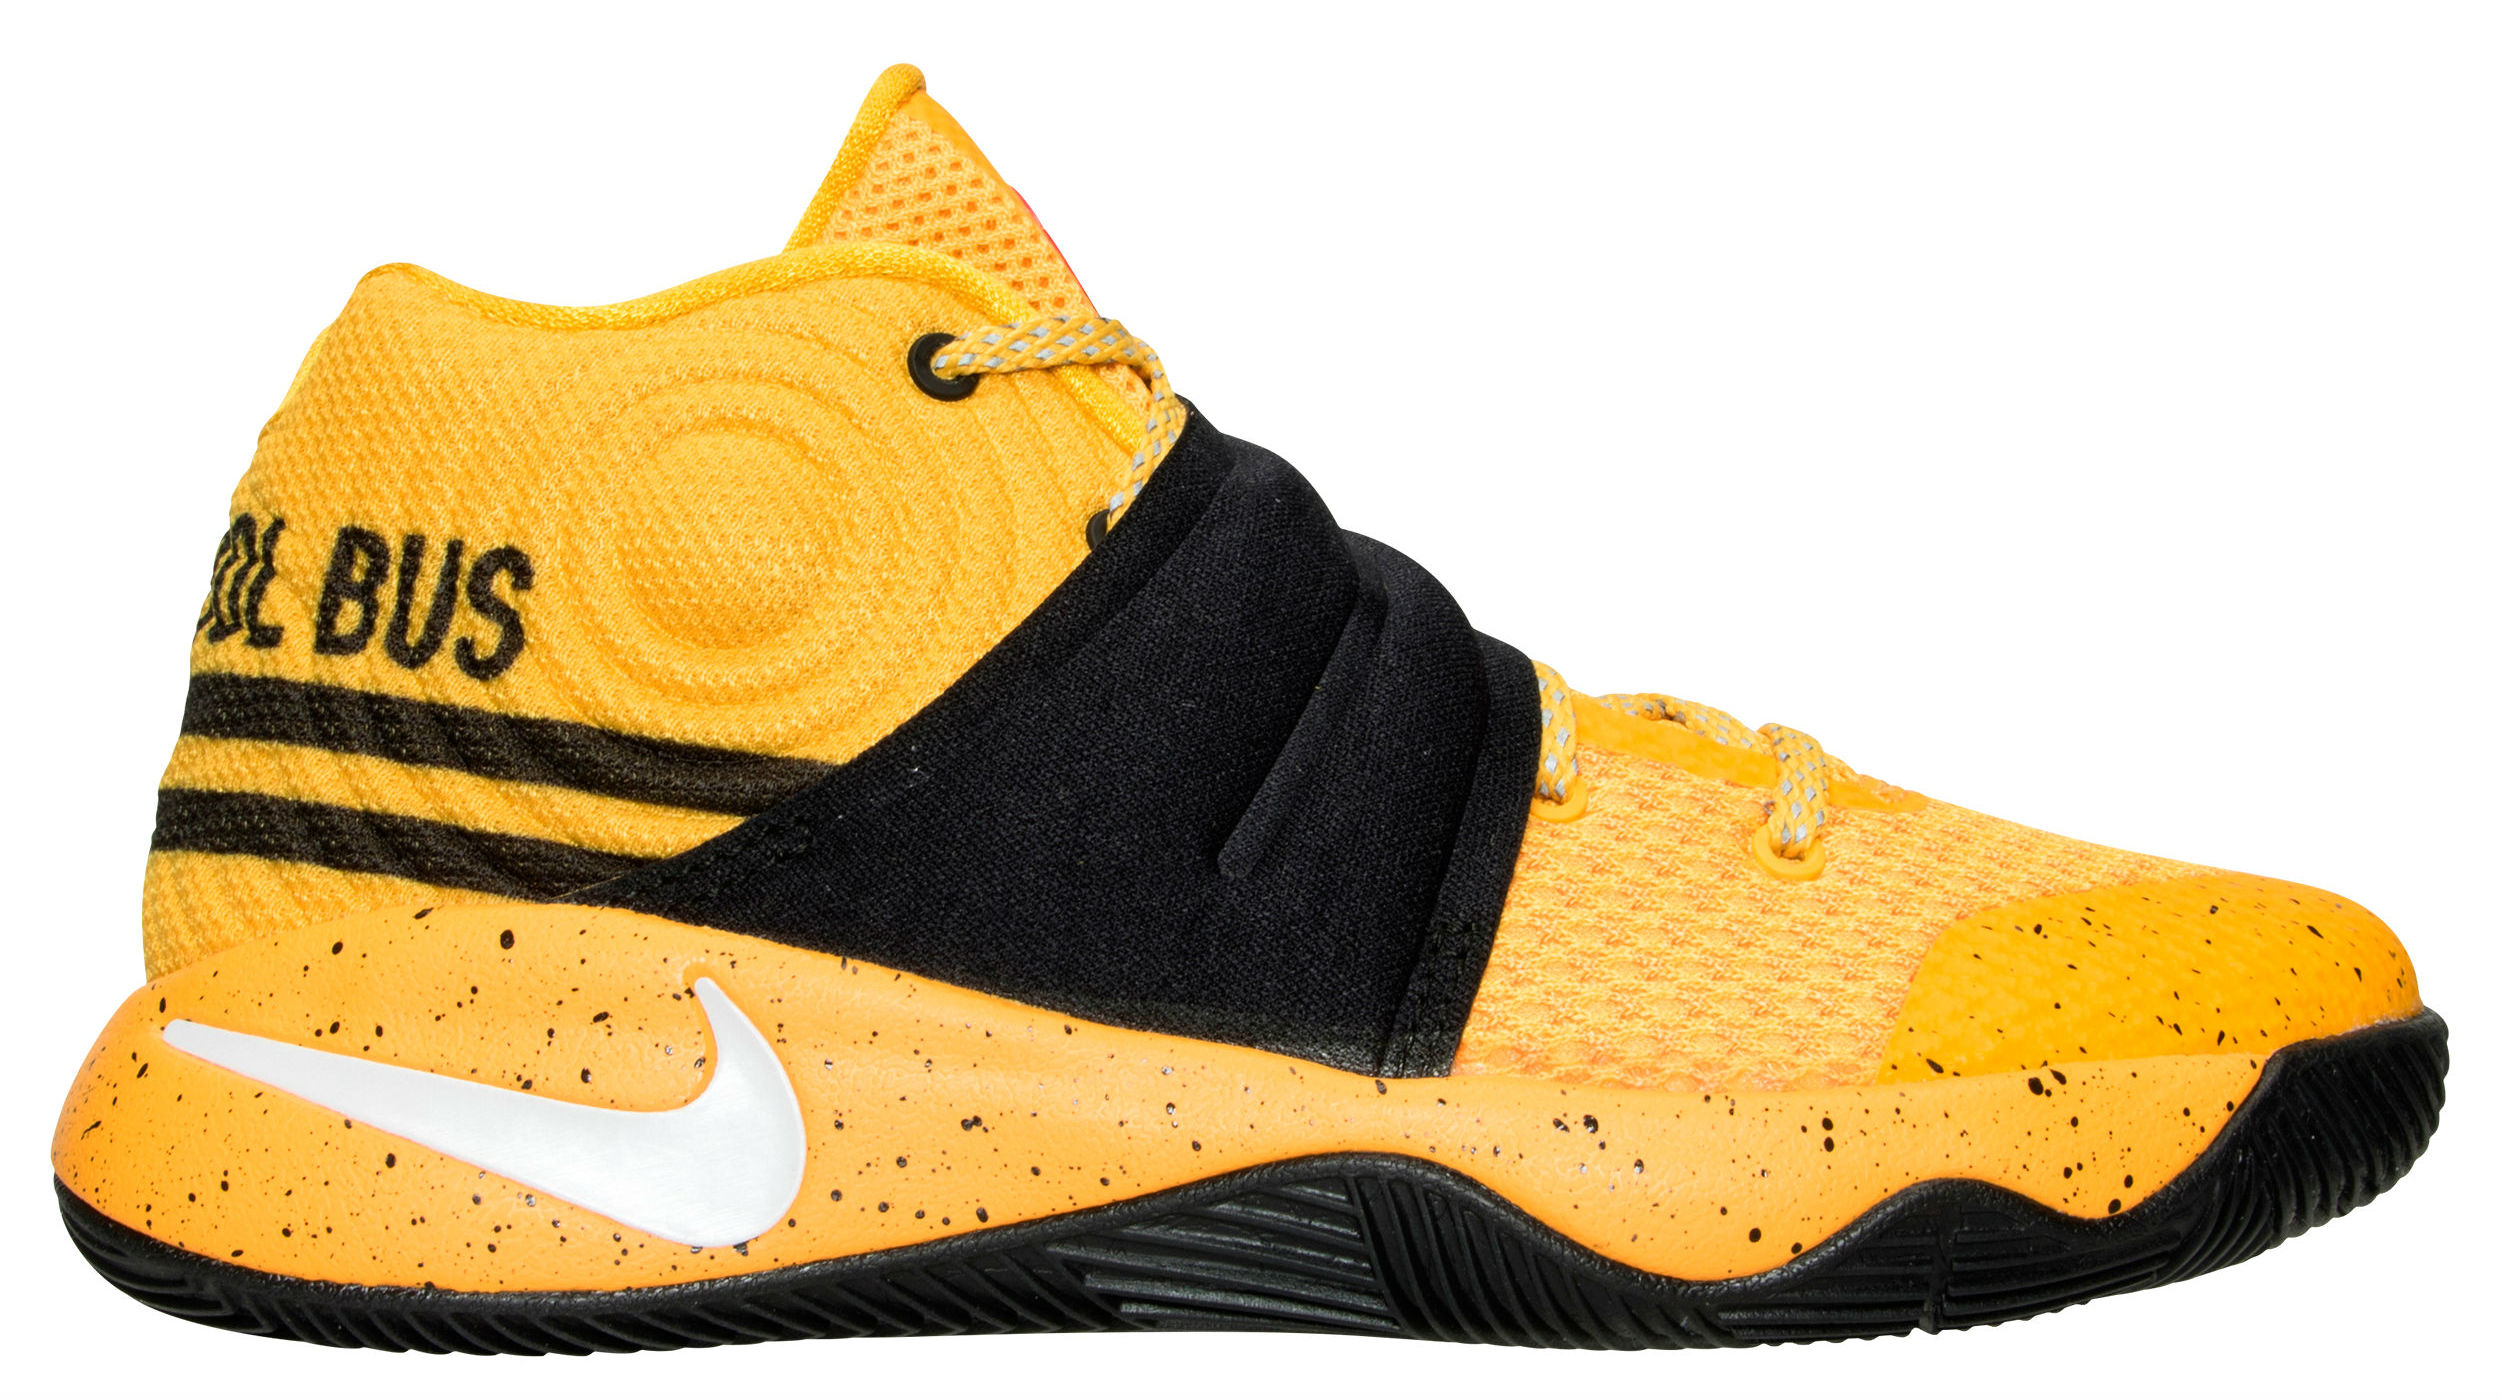 24c76abbe46 Nike Kyrie 2 School Bus | Sole Collector